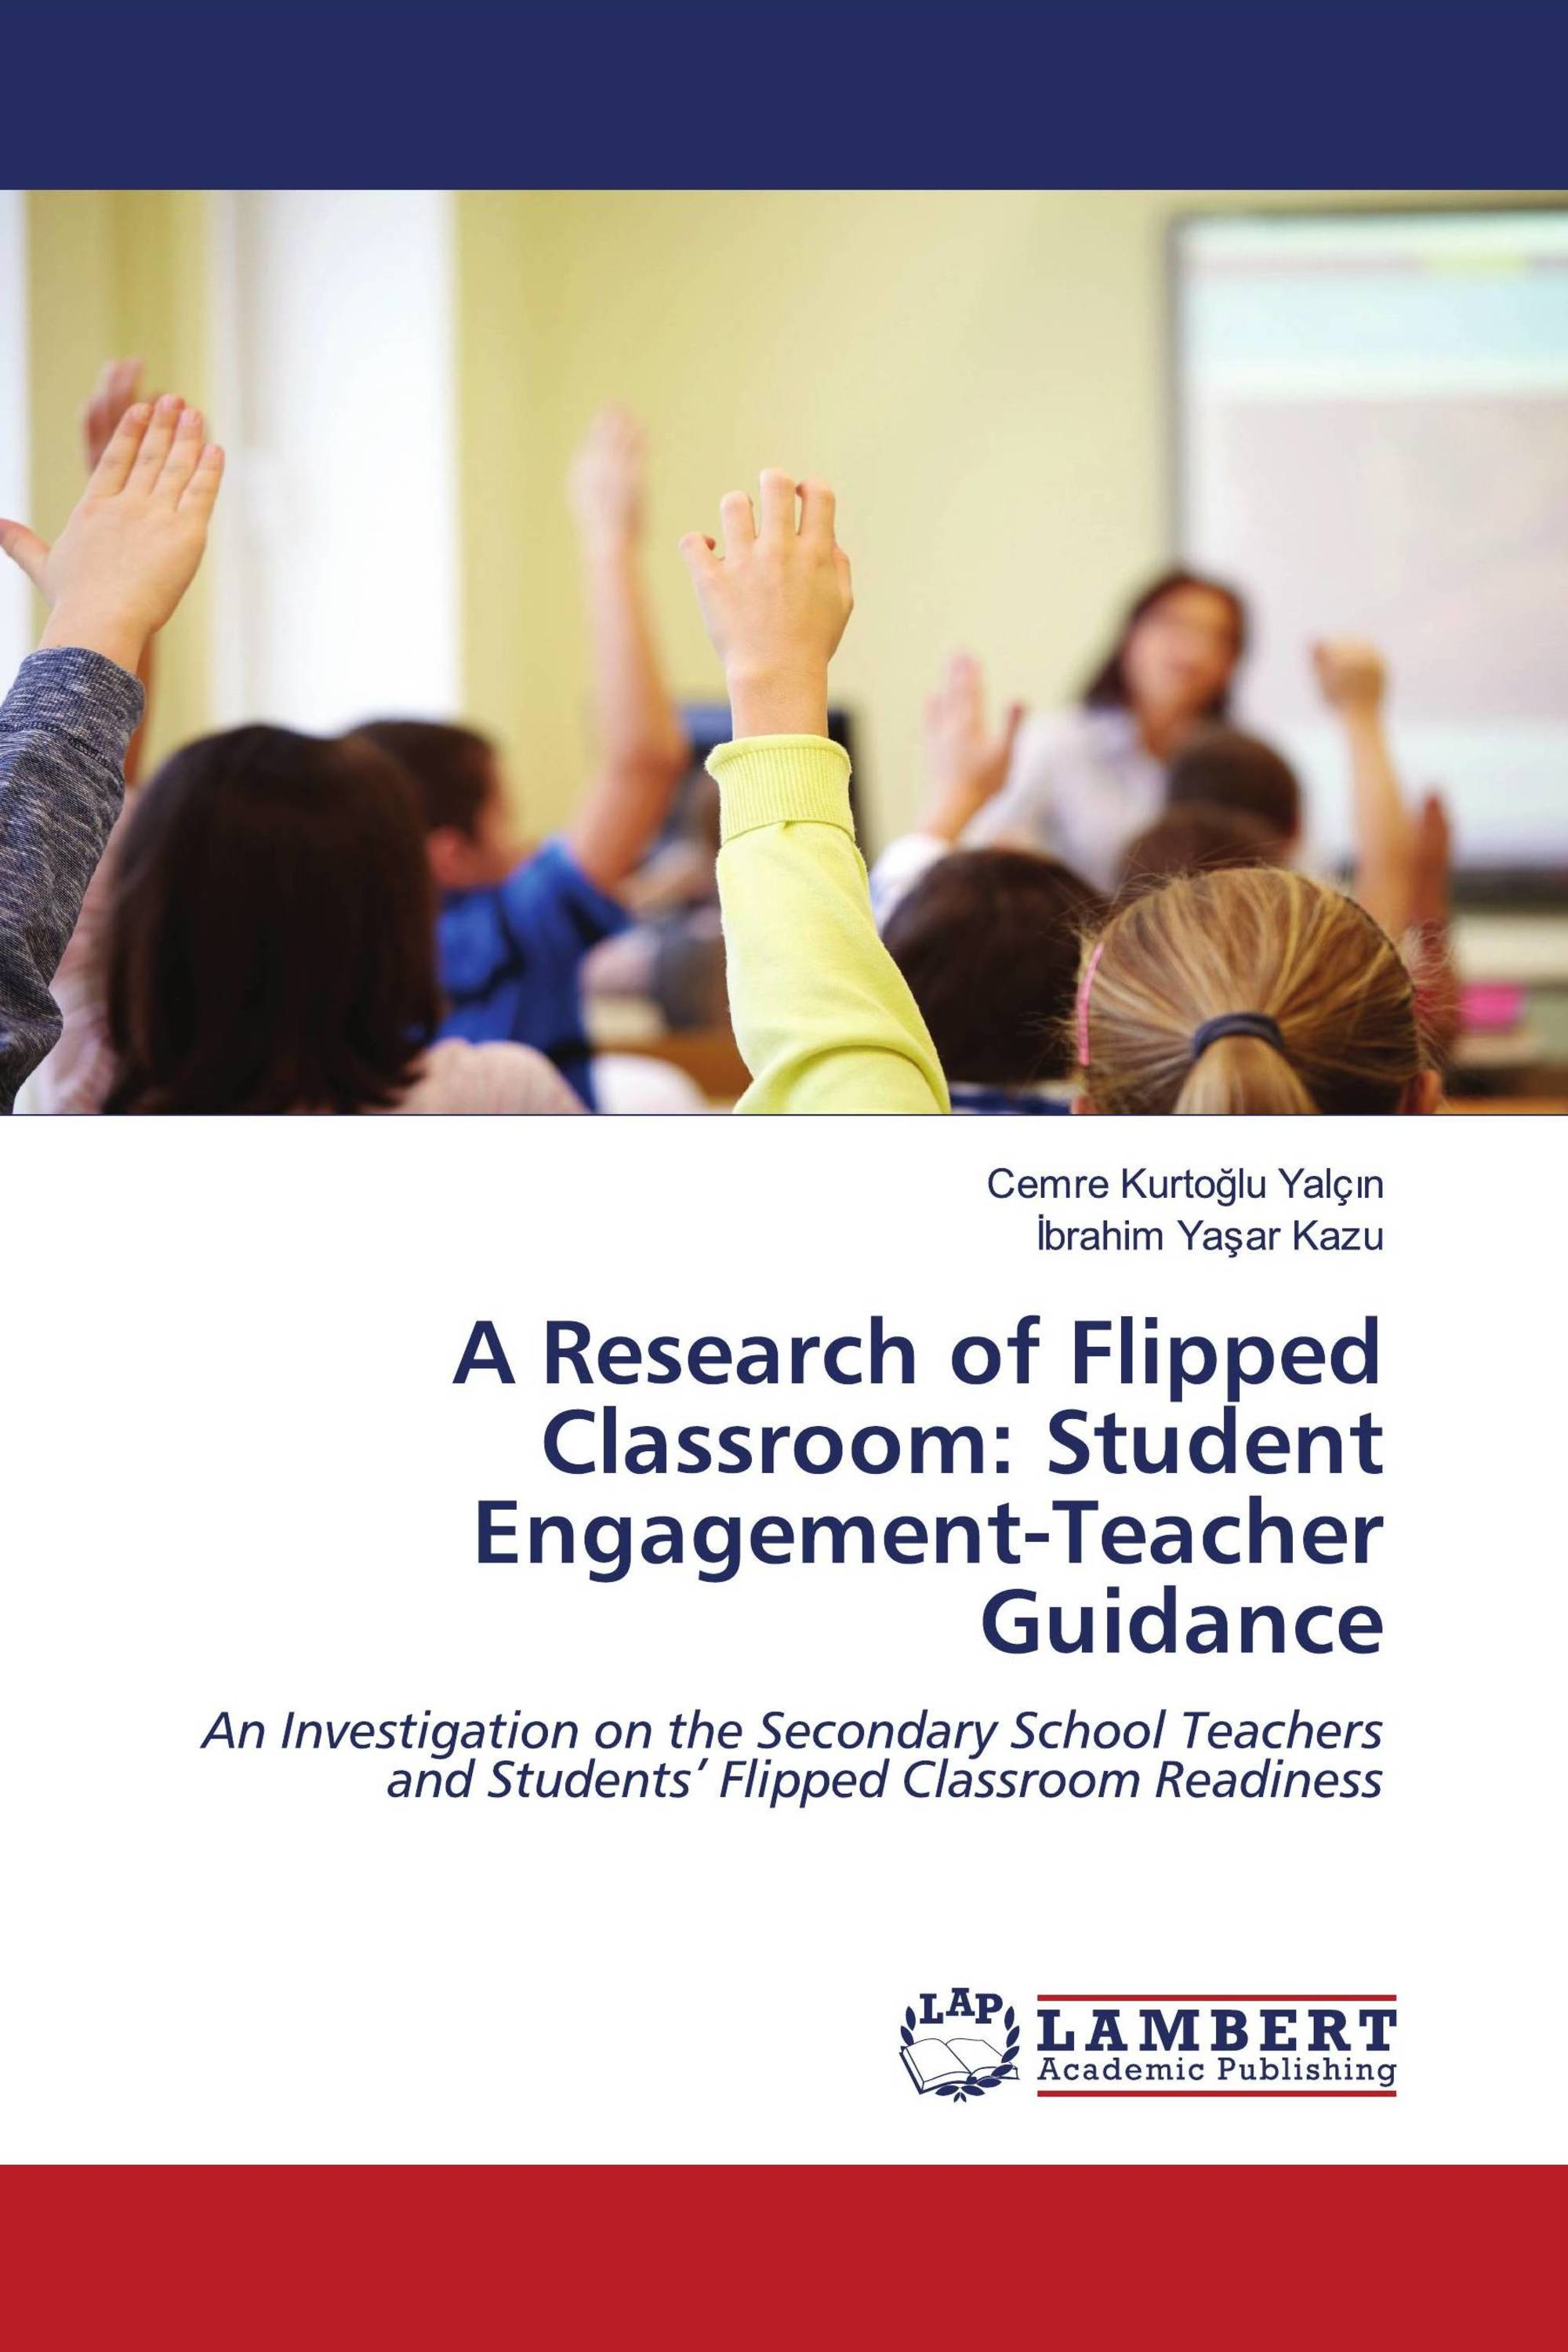 A Research of Flipped Classroom: Student Engagement-Teacher Guidance